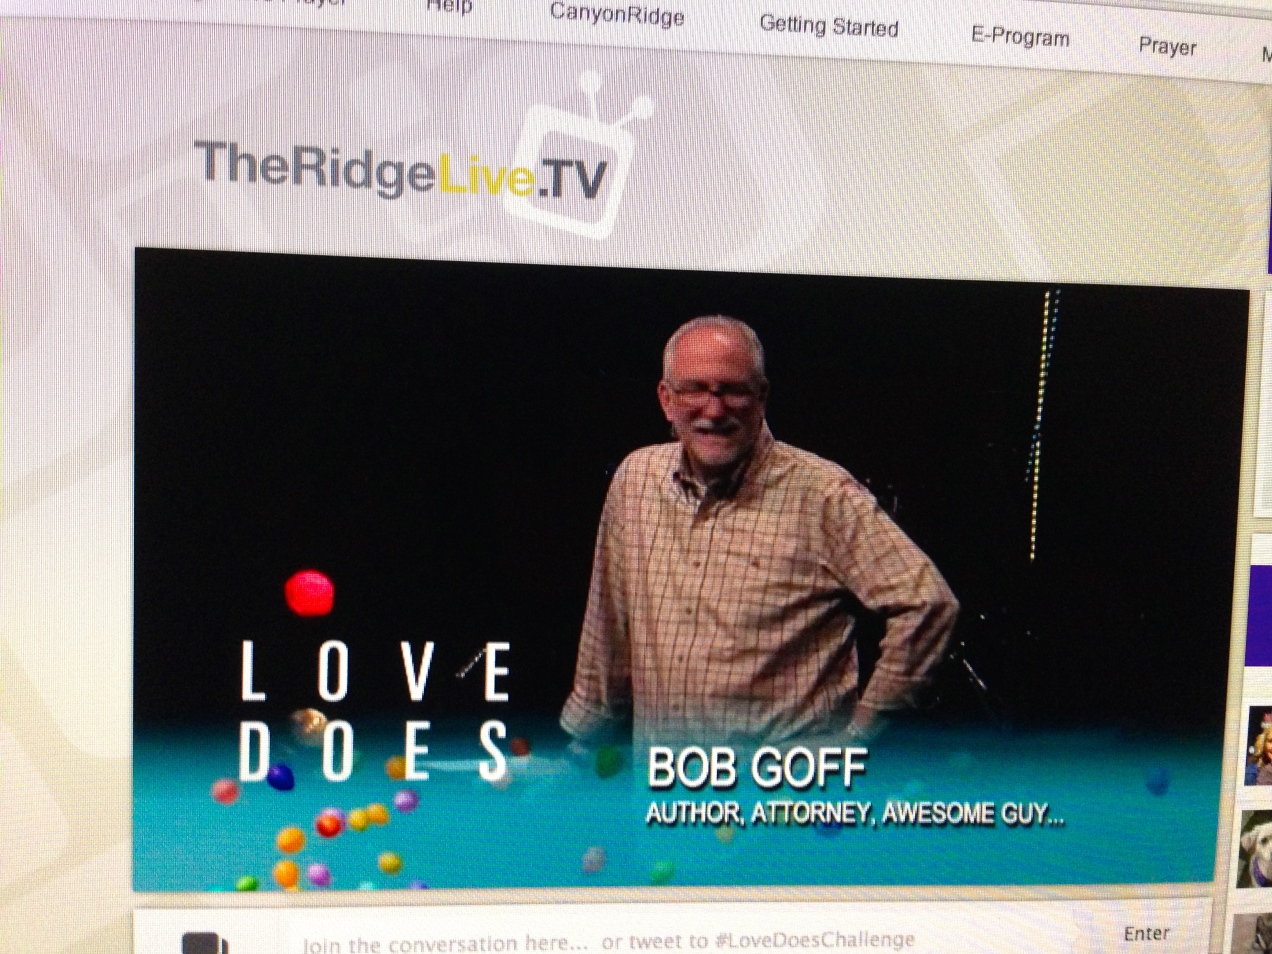 Bob Goff speaks via live stream